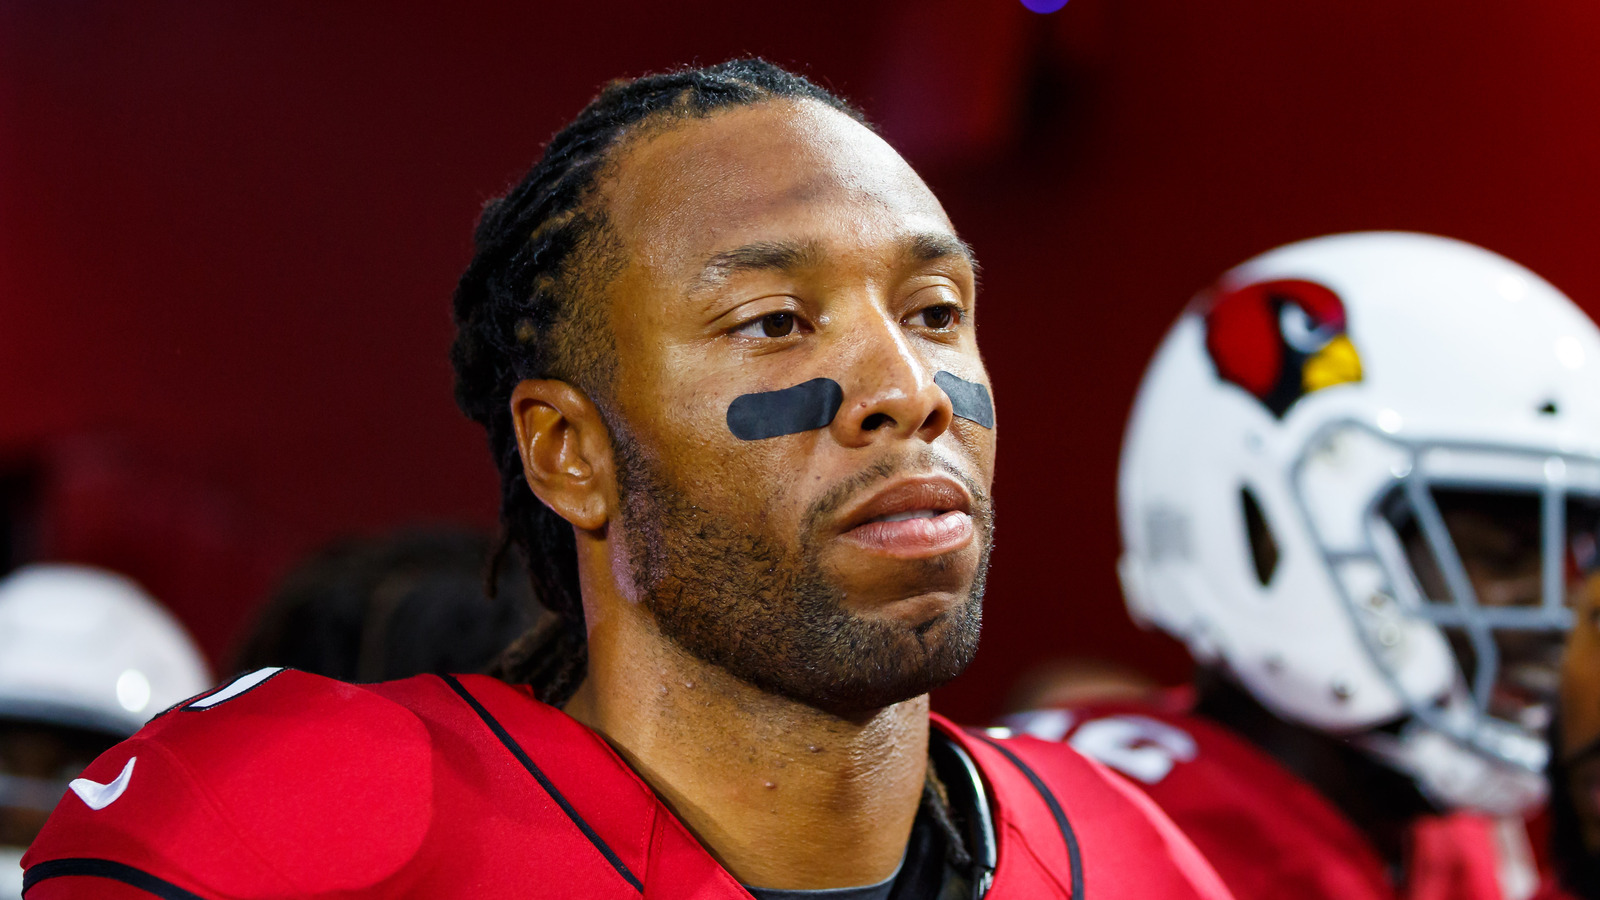 Larry Fitzgerald thinks ex teammate Anquan Boldin should be in